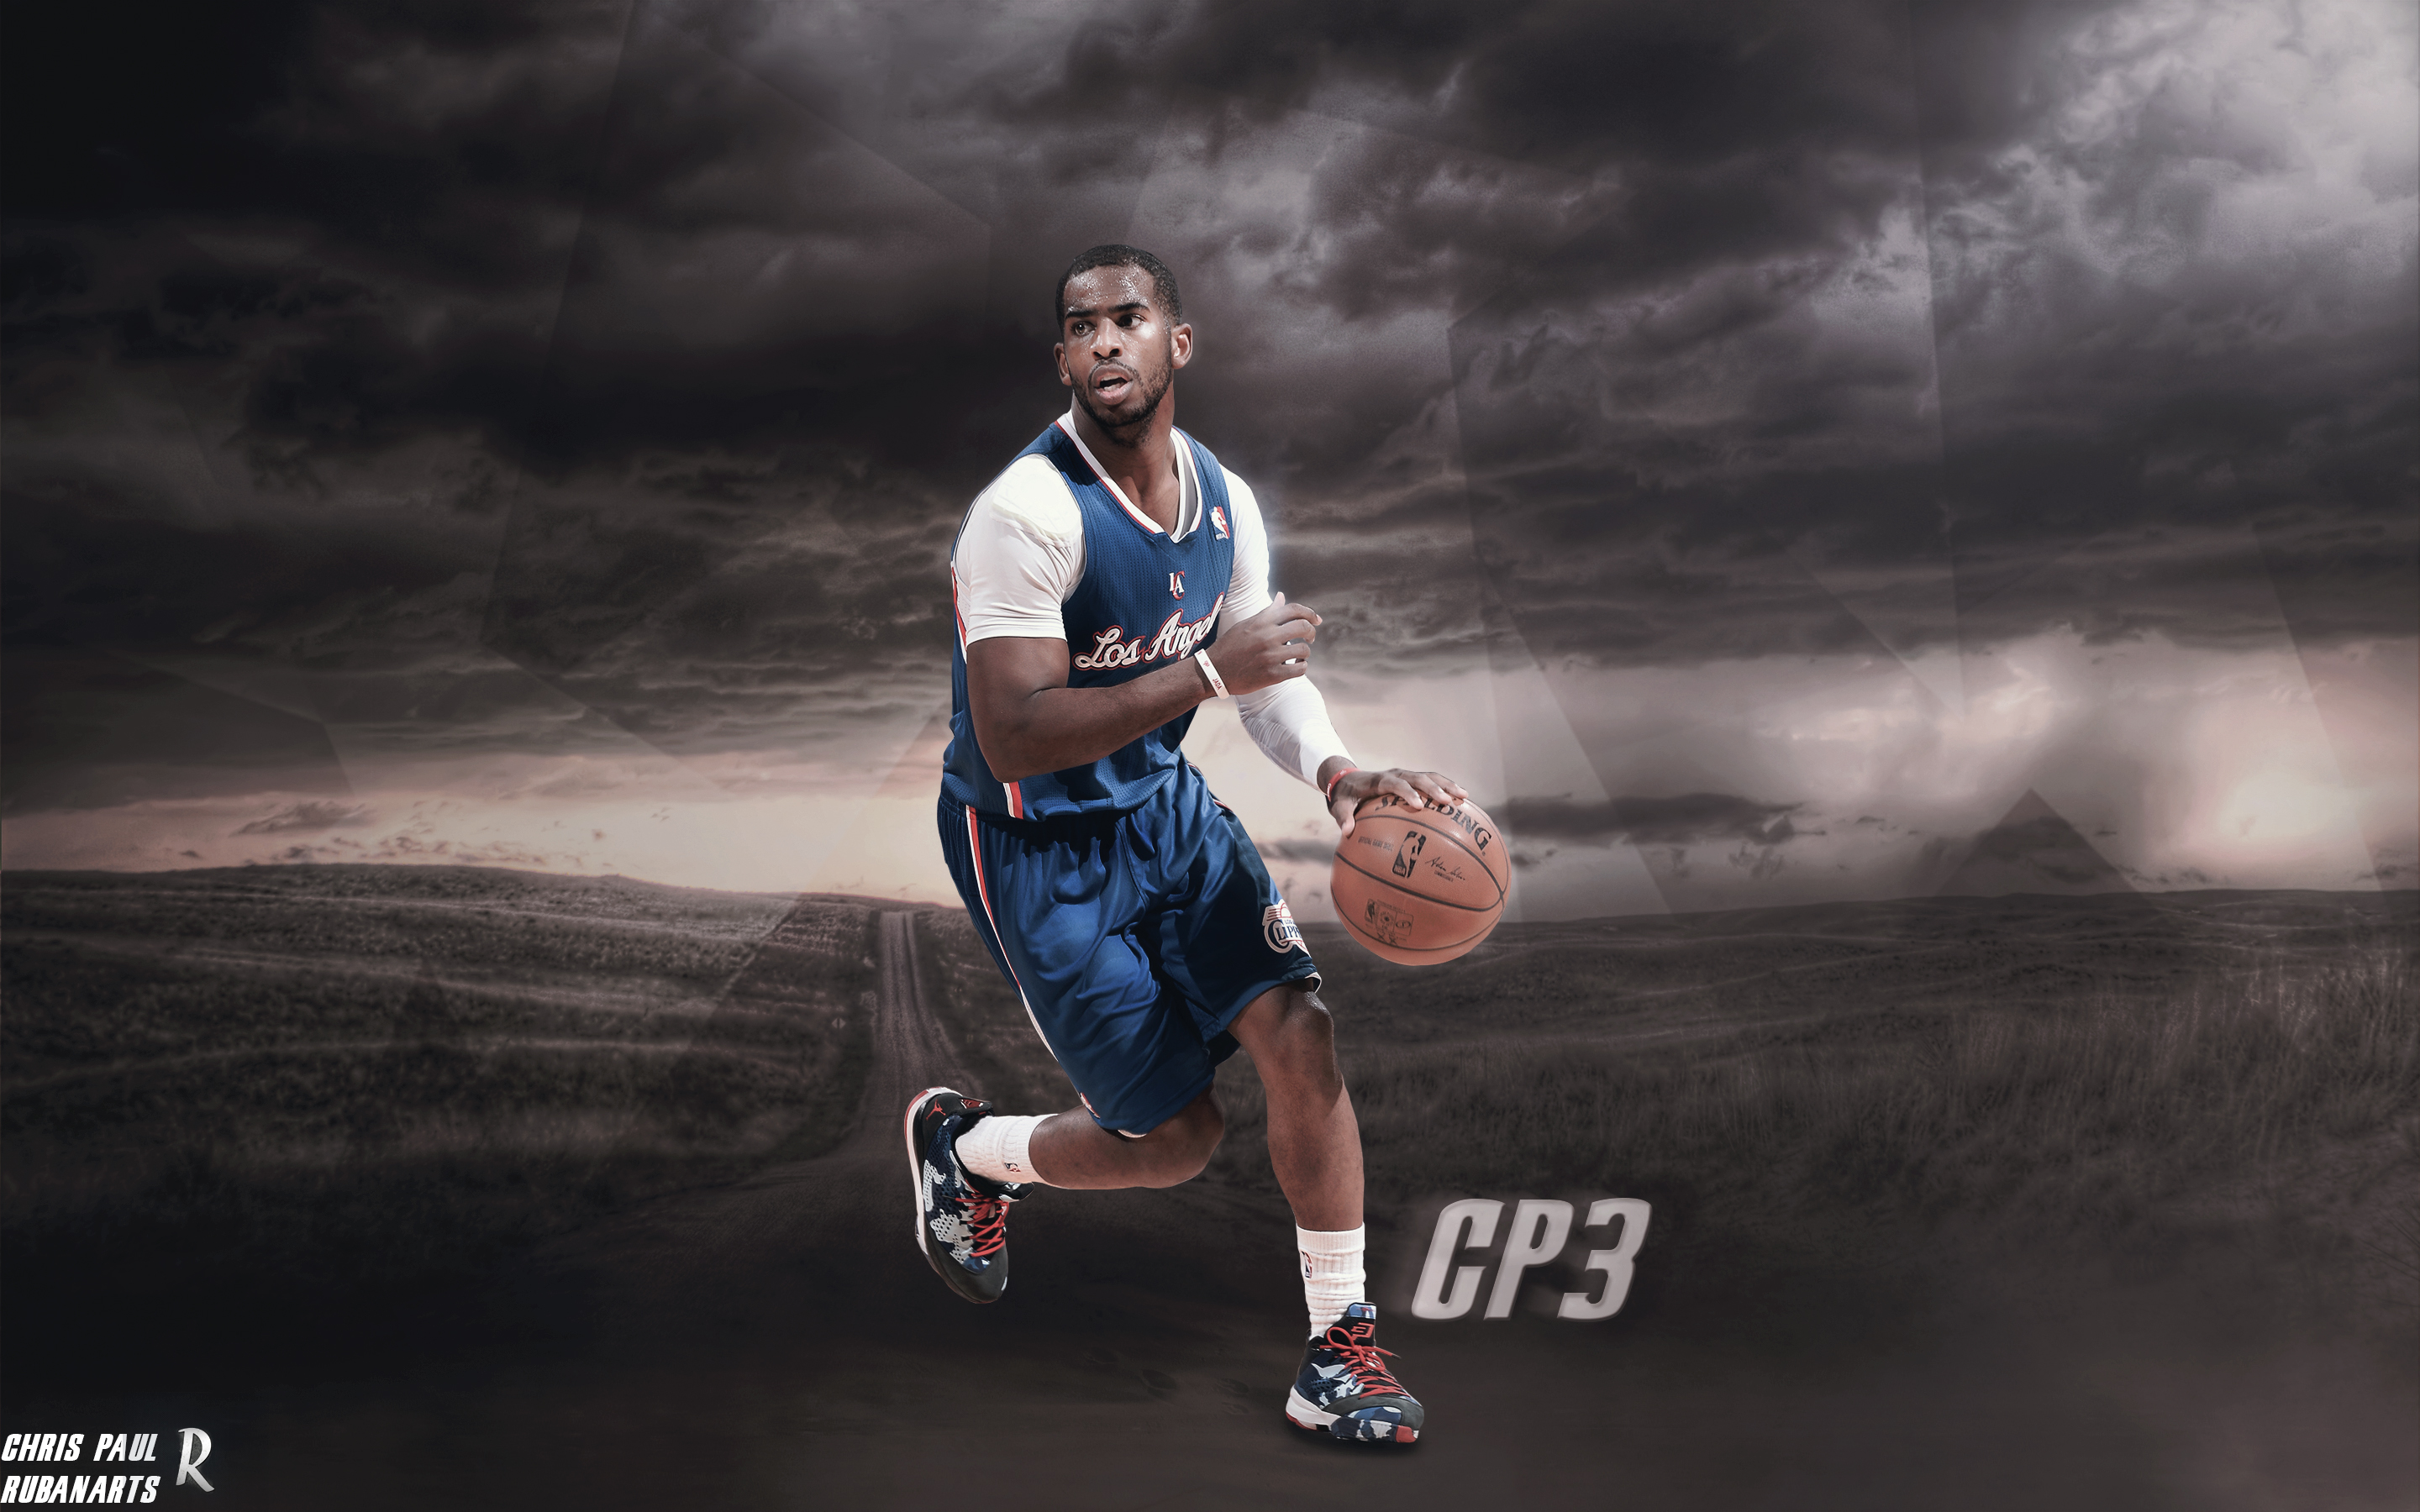 Sick Iphone 4 Wallpapers Chris Paul Wallpapers High Resolution And Quality Download